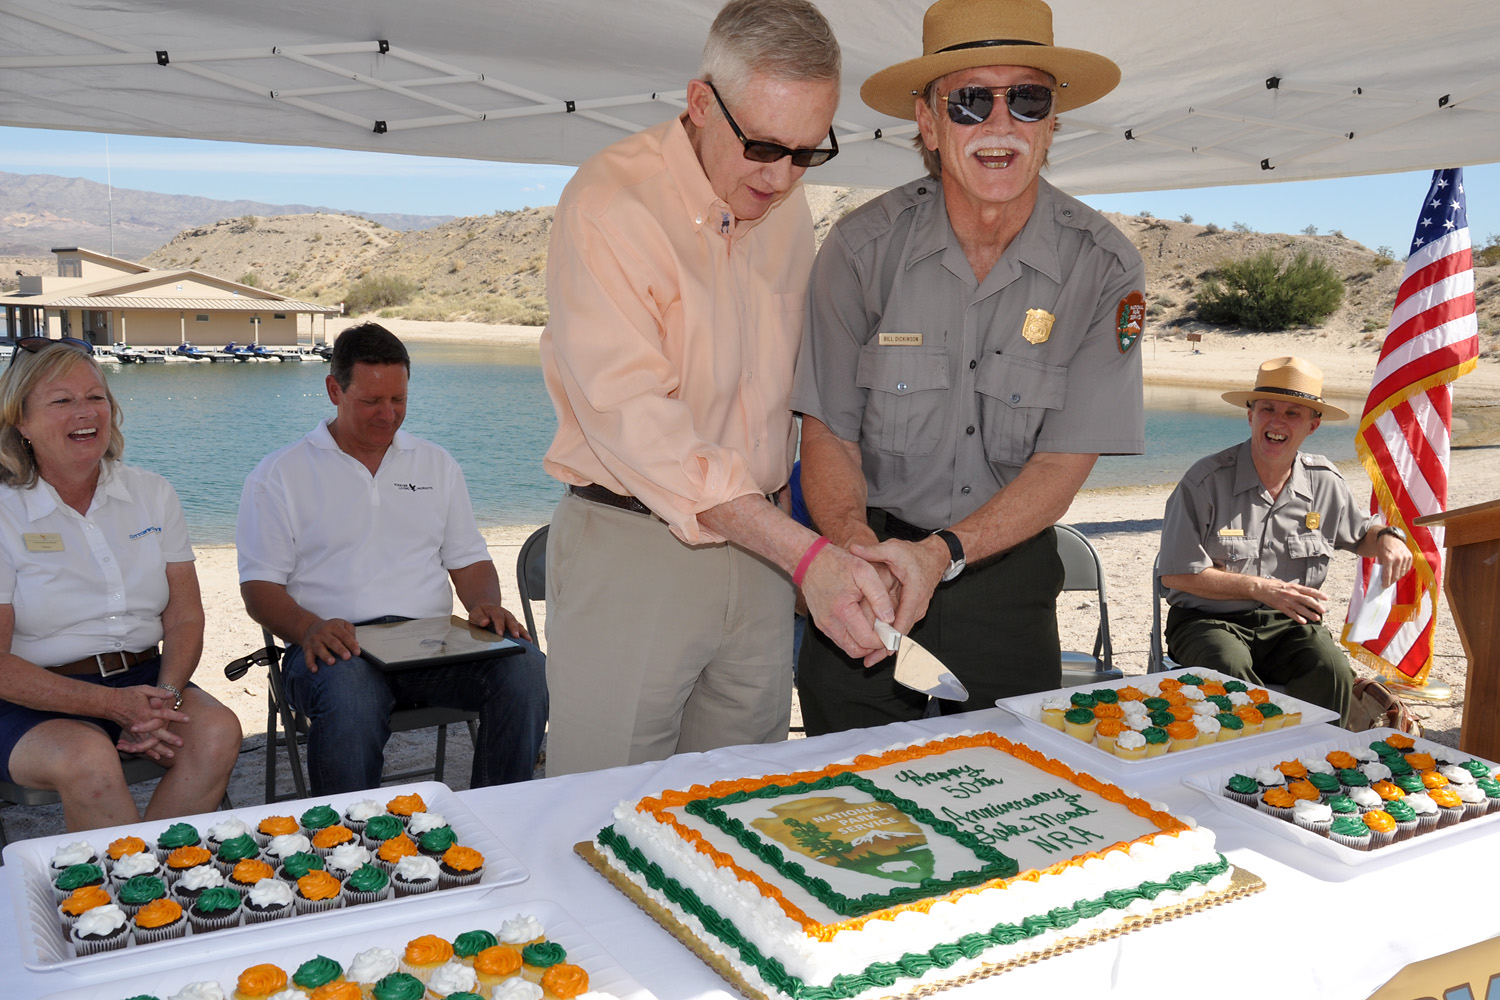 U.S. Sen. Harry Reid and Lake Mead National Recreation Area Superintendent Bill Dickinson prepare to cut a birthday cake to celebrate the park's 50th anniversary.